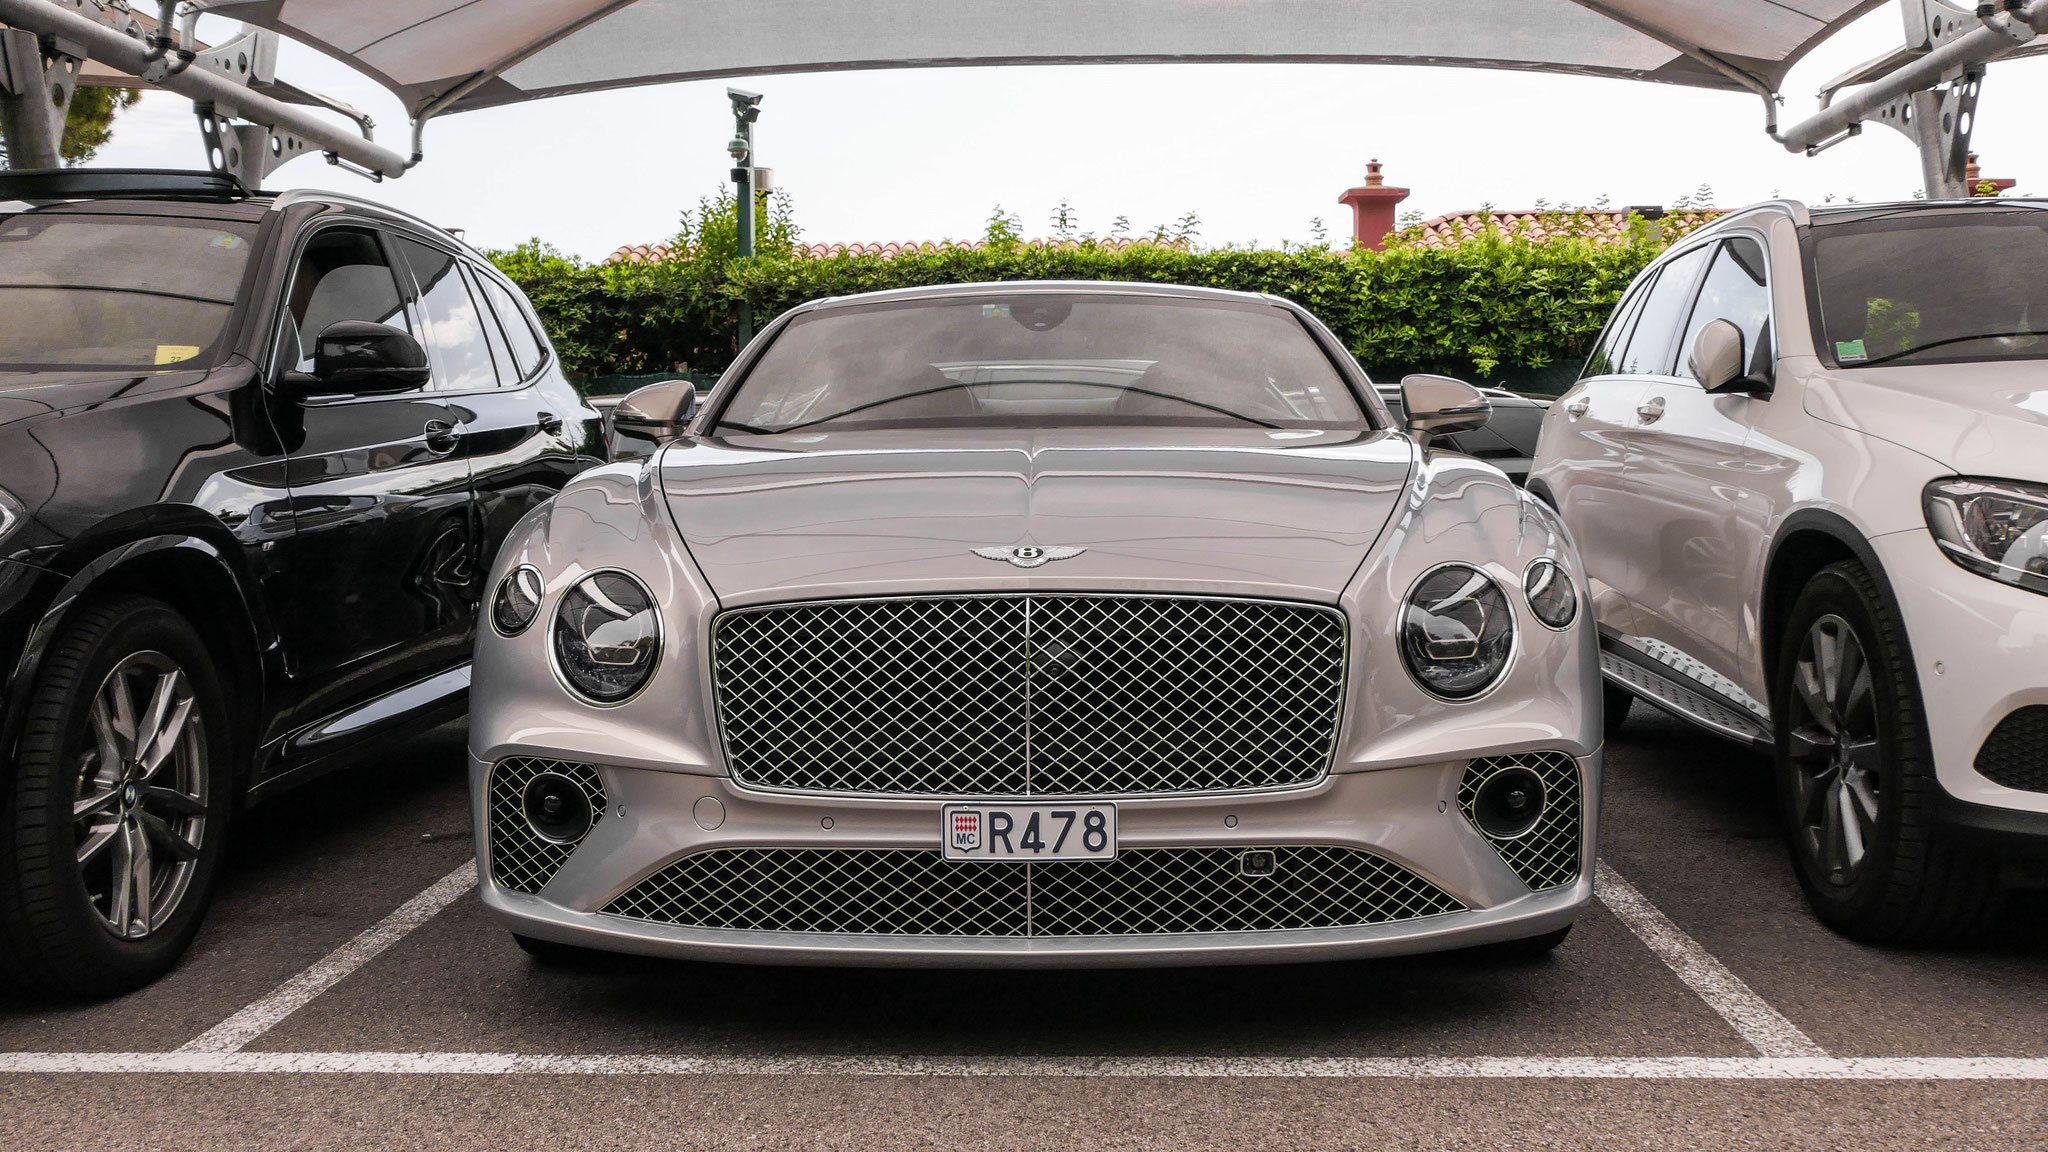 Bentley Continental GT - R478 (MC)